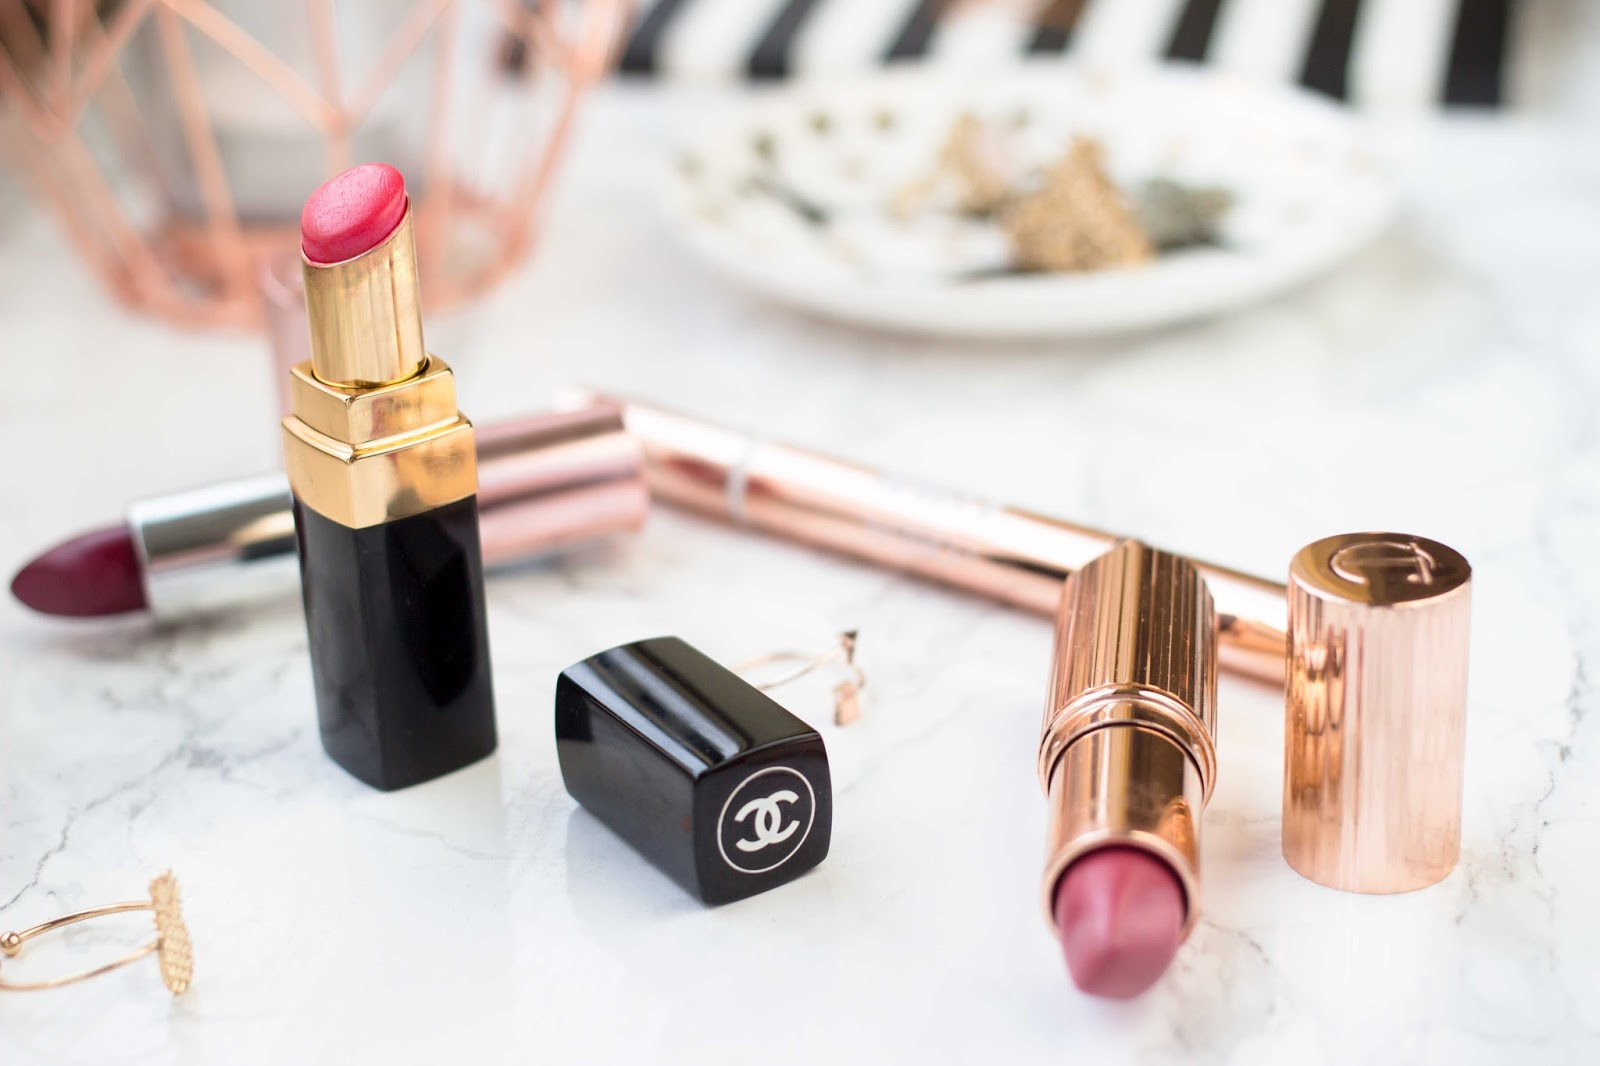 Makeup, Chanel Lipstick, Desinvolte, Charlotte Tilbury Amazing Grace, Lipstick, Beauty Bloggers, Beauty Blogs, UK Blogs, Katie Writes Blog, Katie Writes,